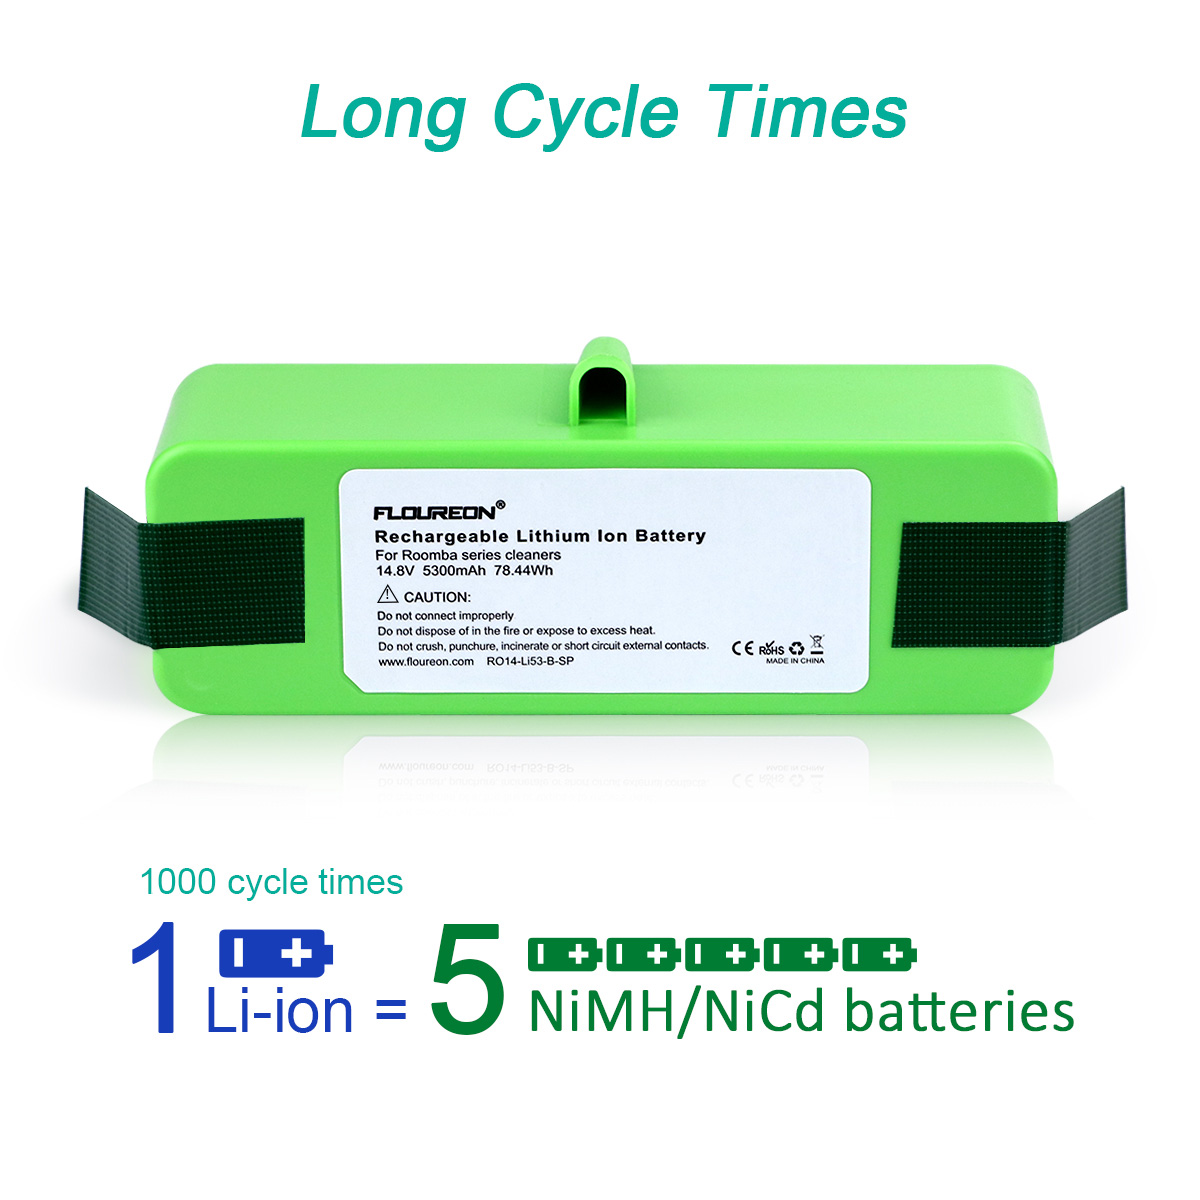 CyberTech New Replacement Ni-Mh Battery for iRobot Roomba 500 600 700 800 Series